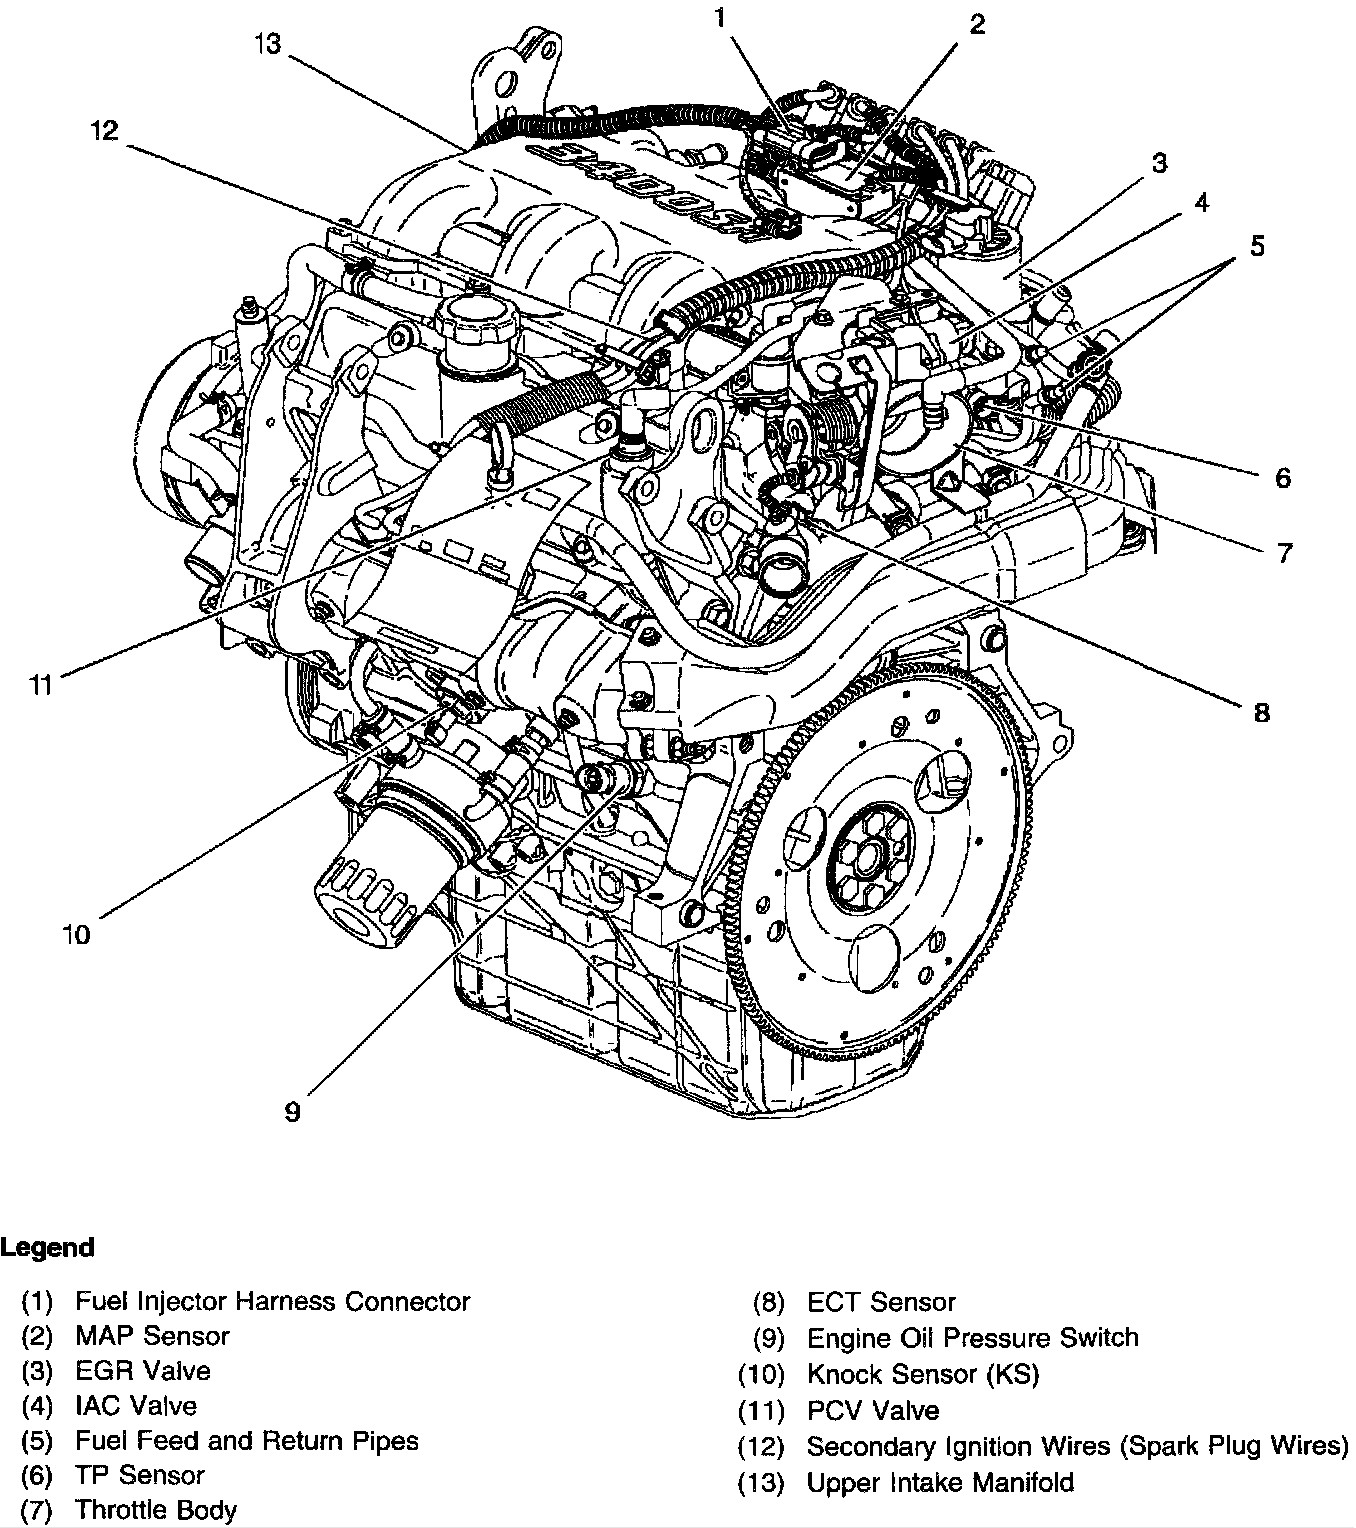 Gm 3400 Sfi Engine Diagram Reinvent Your Wiring 99 Oldsmobile Alero Pontiac 3 4l V6 Experts Of U2022 Rh Evilcloud Co Uk Throttle Chevy Crankshaft Sensor